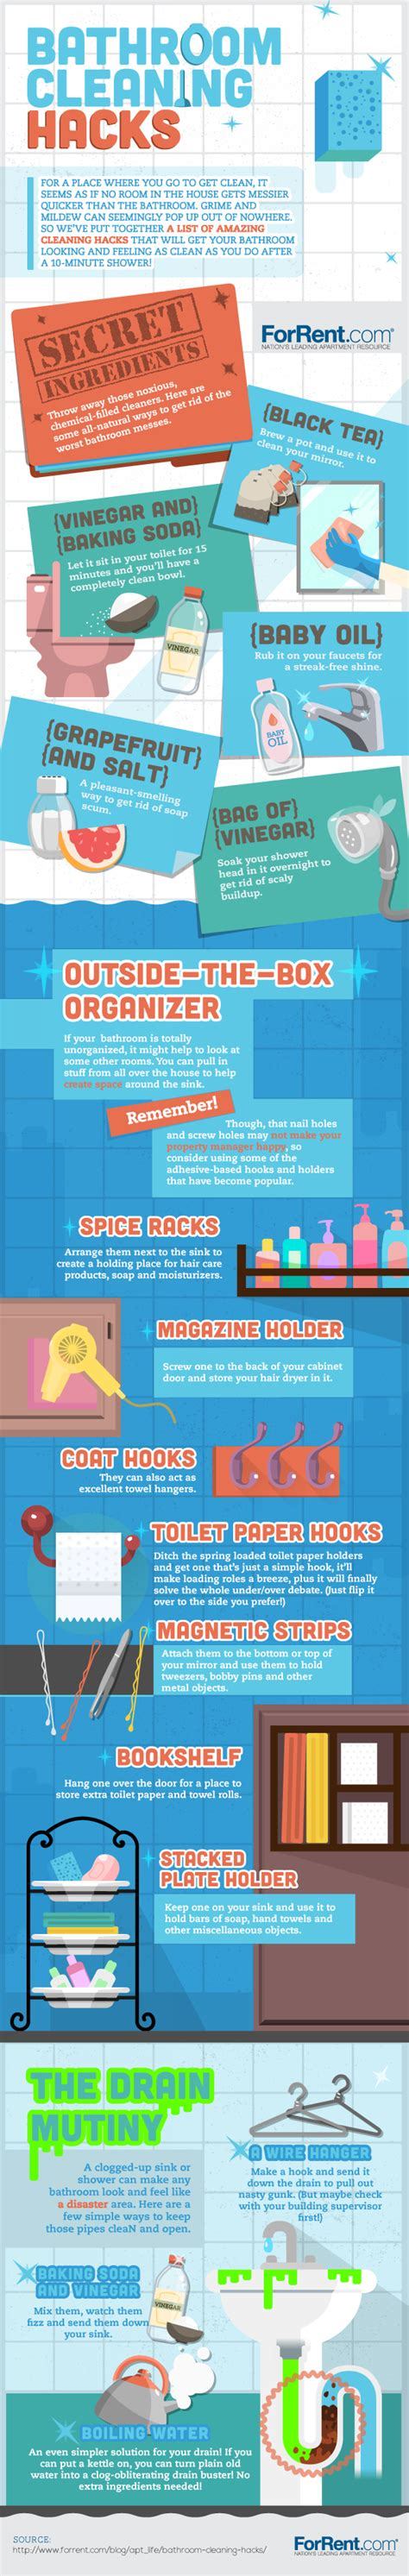 life hacks for bedroom bathroom hacks hacks and on pinterest cleaning picture life for bathroomlife